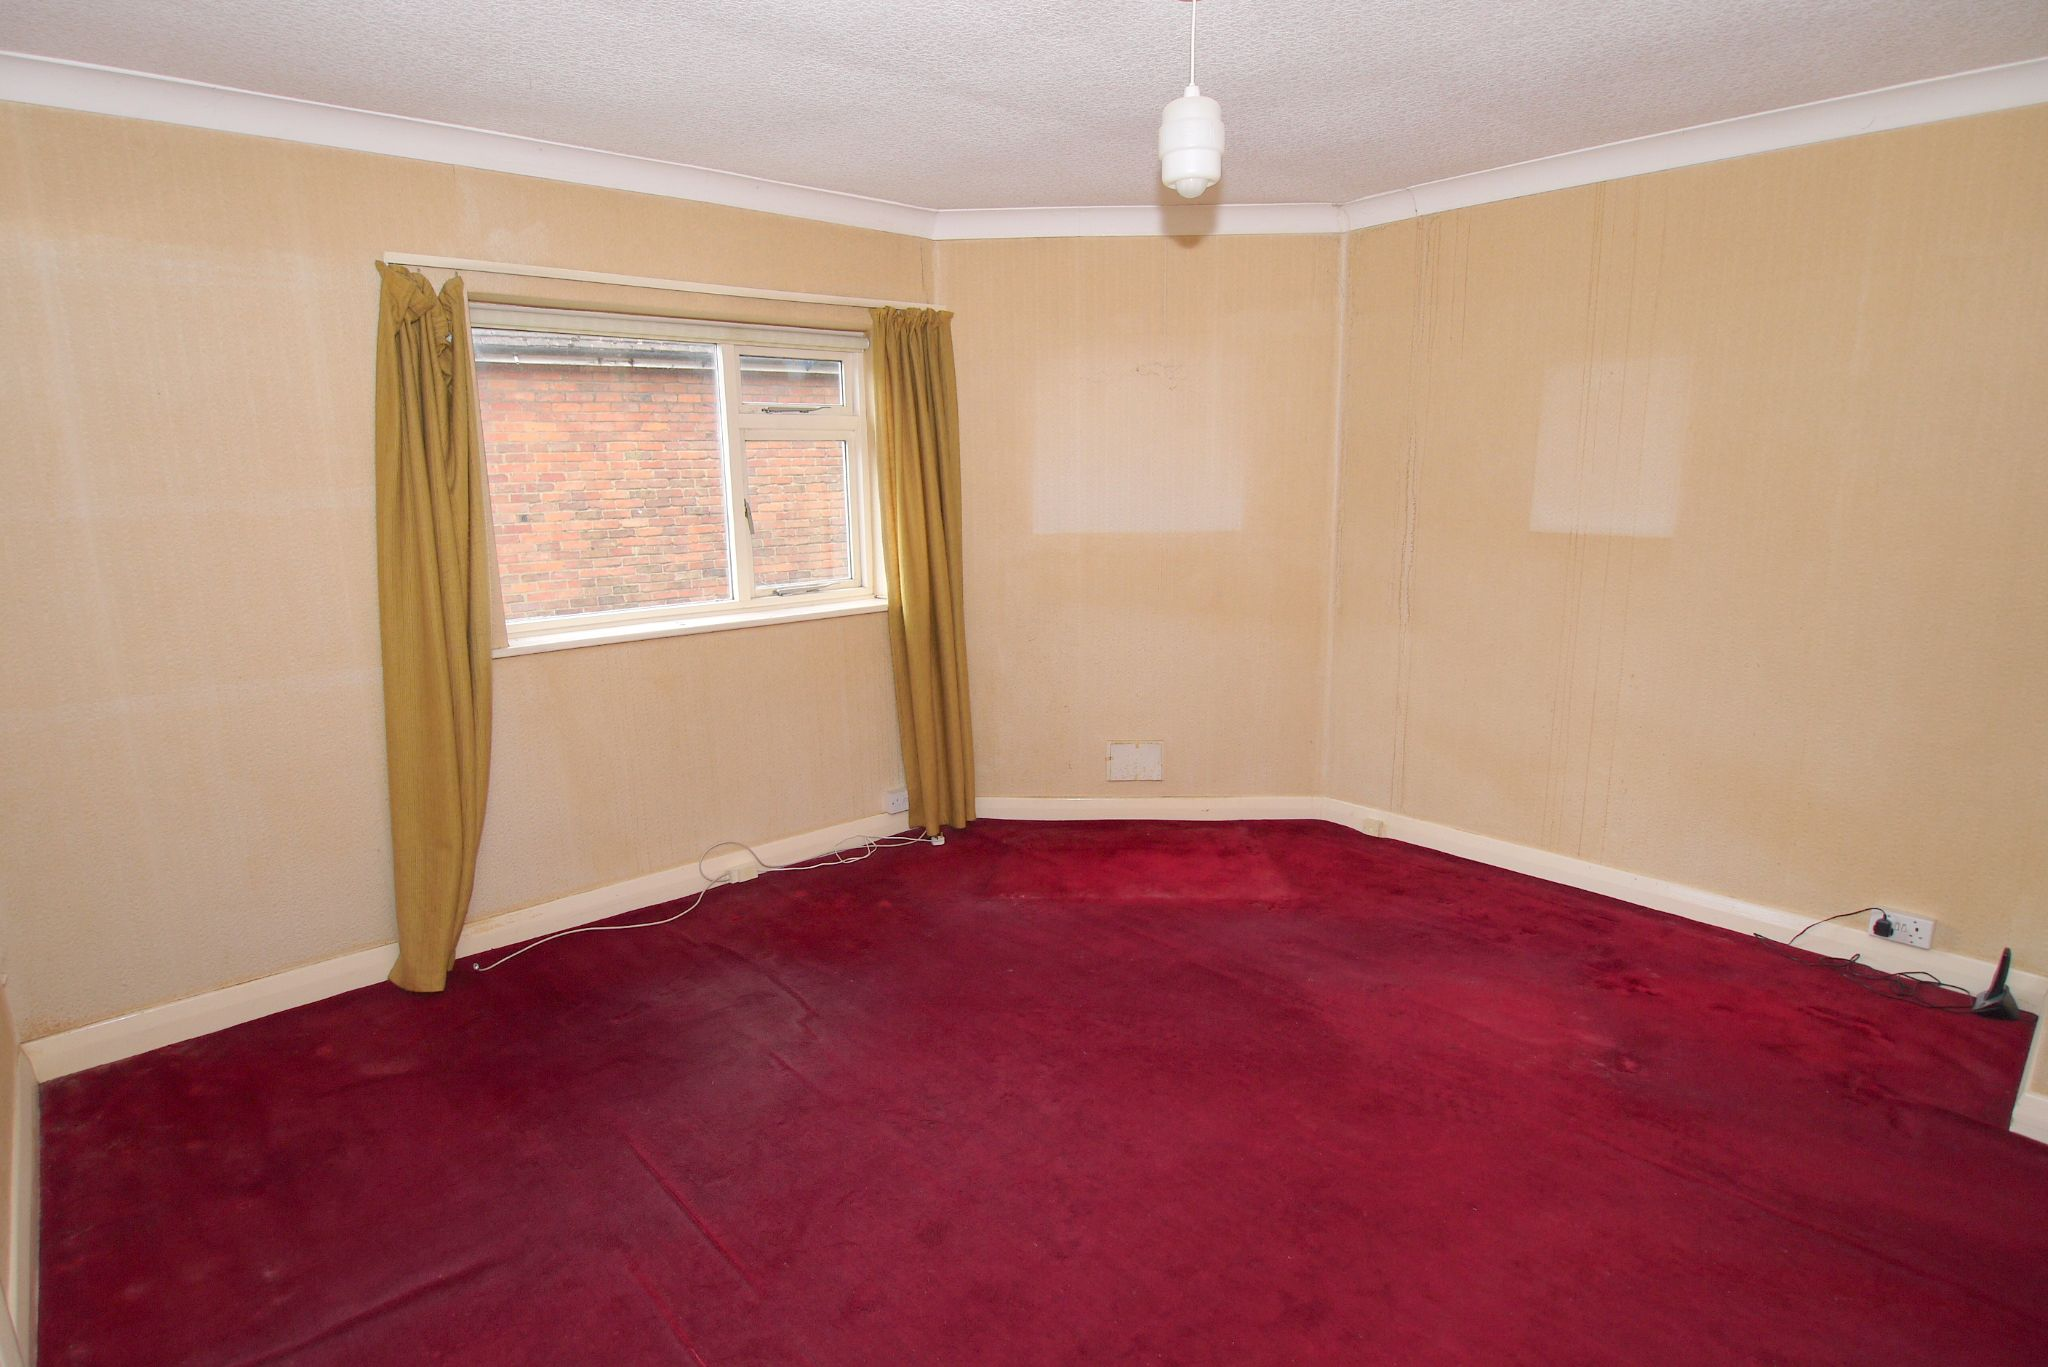 2 bedroom maisonette flat/apartment For Sale in Sevenoaks - Photograph 2